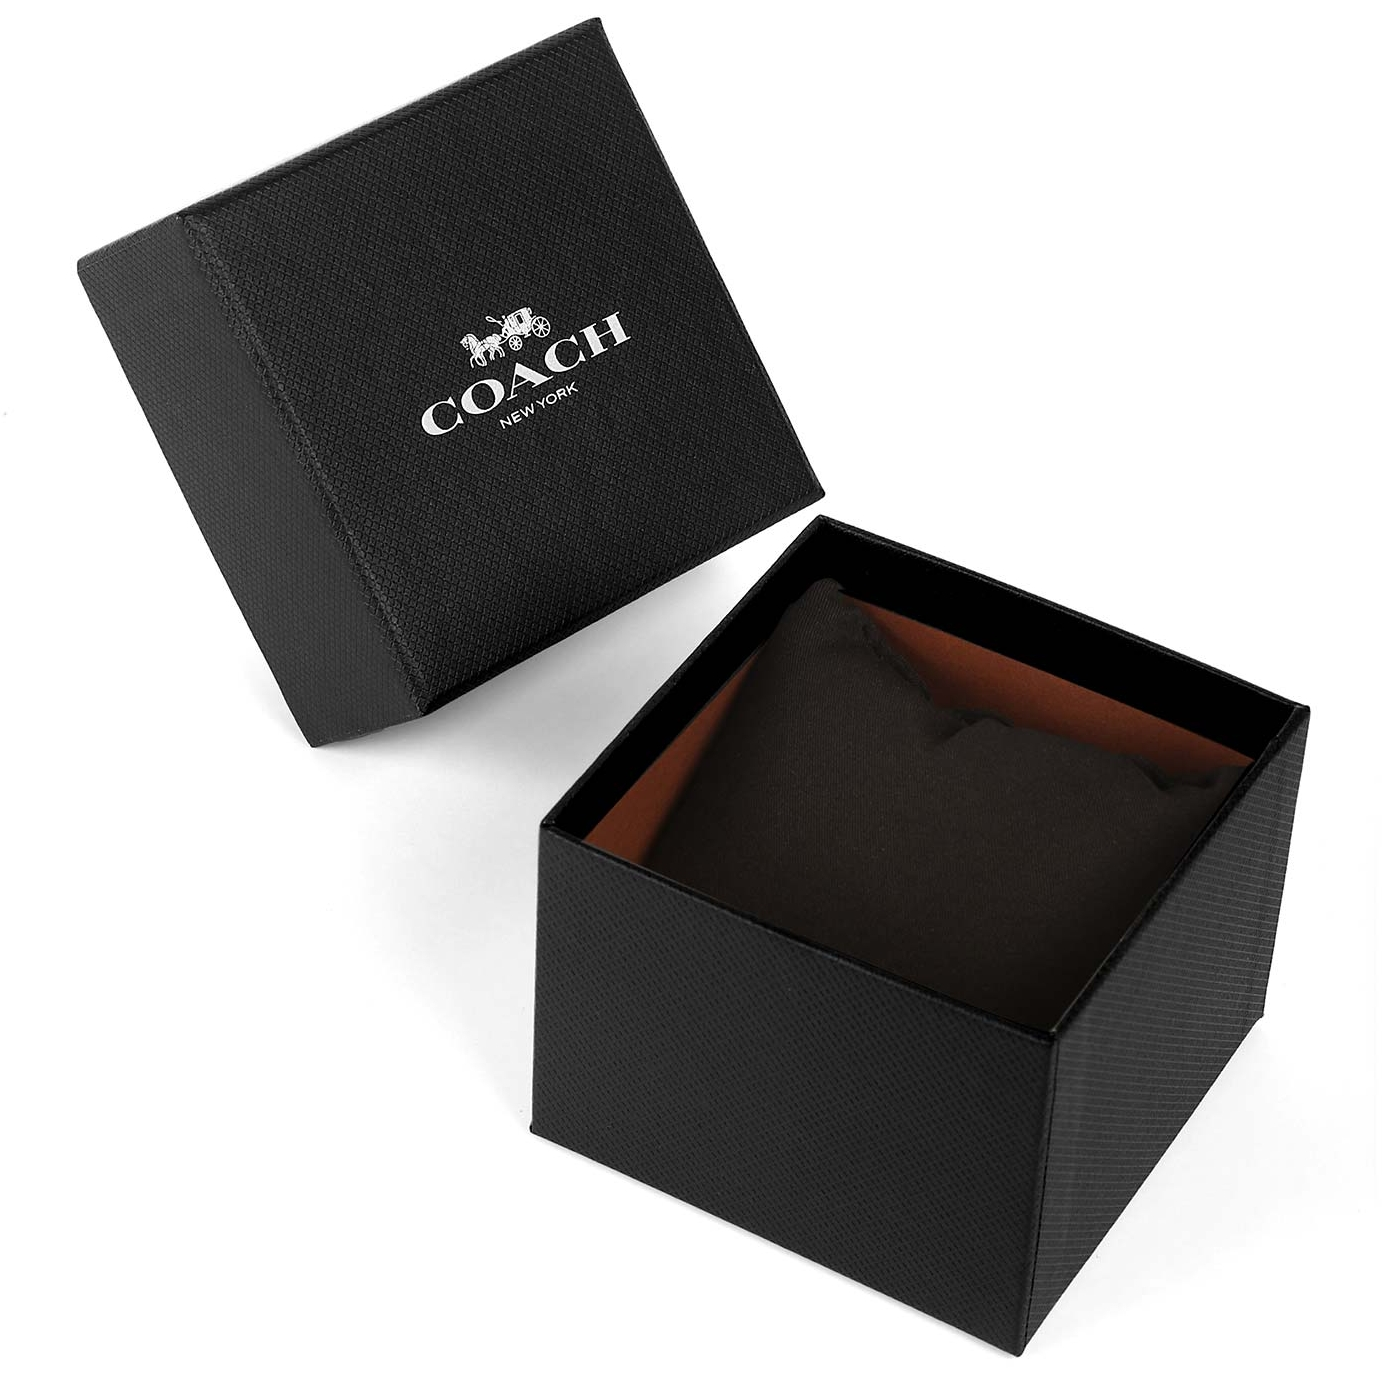 Official Coach presentation box